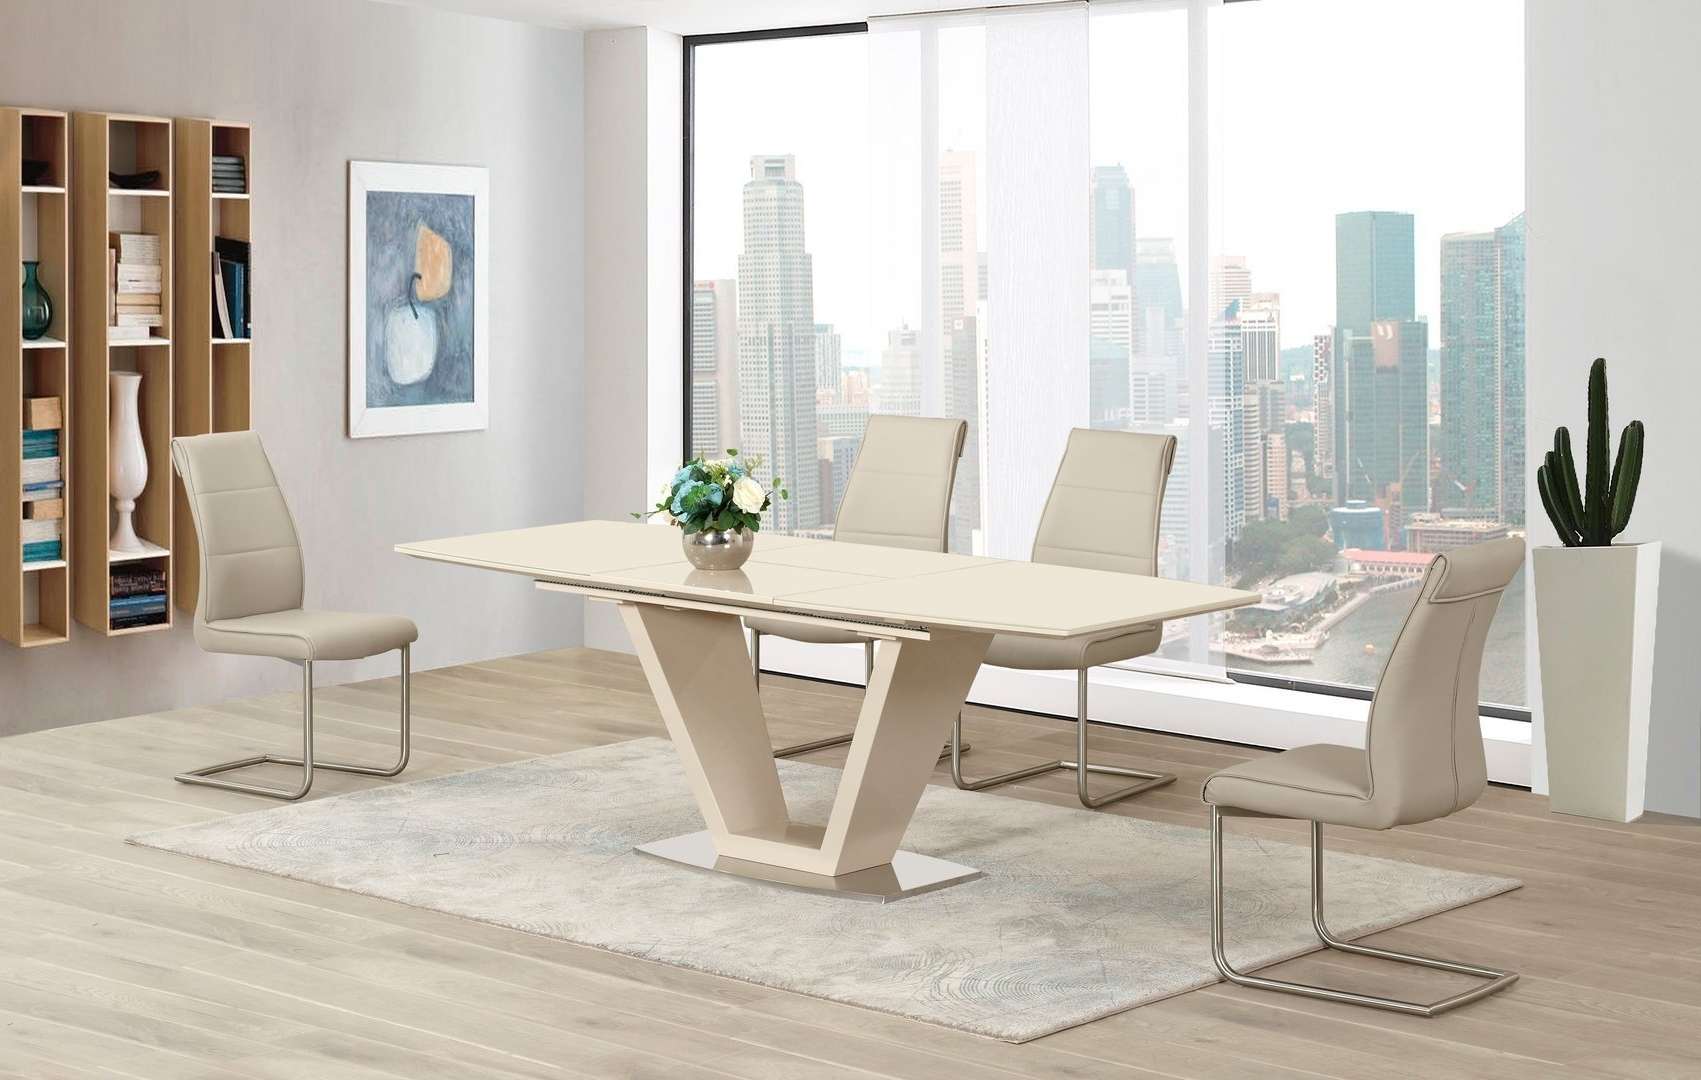 Cream Extending Glass High Gloss Dining Table And 4 Taupe Chairs Set Within Trendy High Gloss Dining Furniture (Gallery 11 of 25)